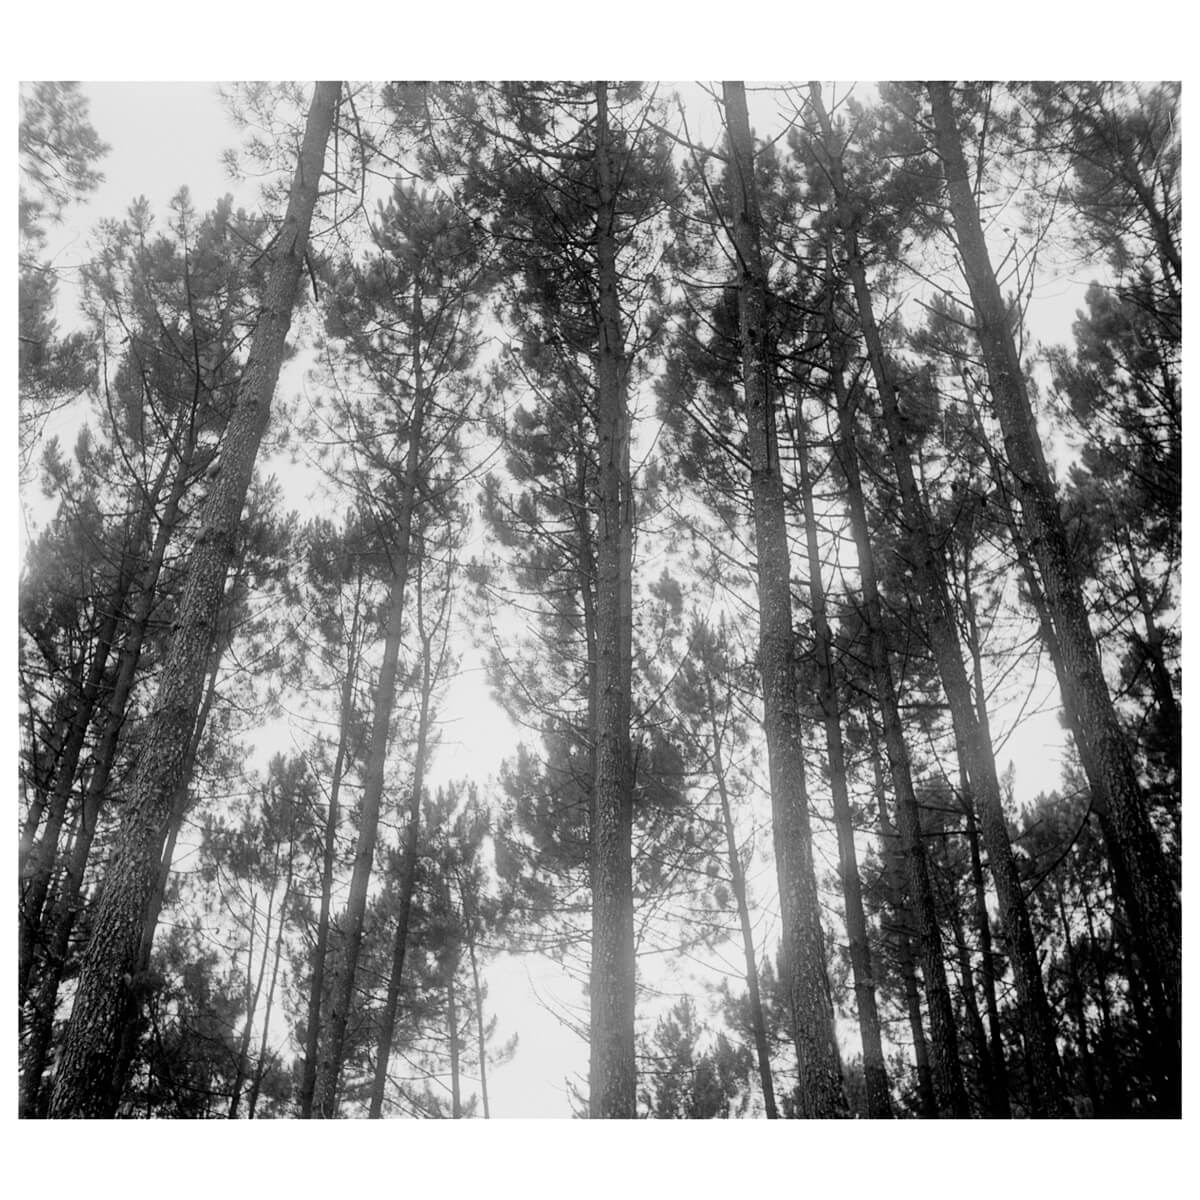 5 Frames... Of a foggy forest on an English TLR and Kodak Tri-X 400 (120 Format / EI 400 / MPP Microcord MKII + 77.5mm f/3.5 Ross Xpres) - by Leo Nikishin